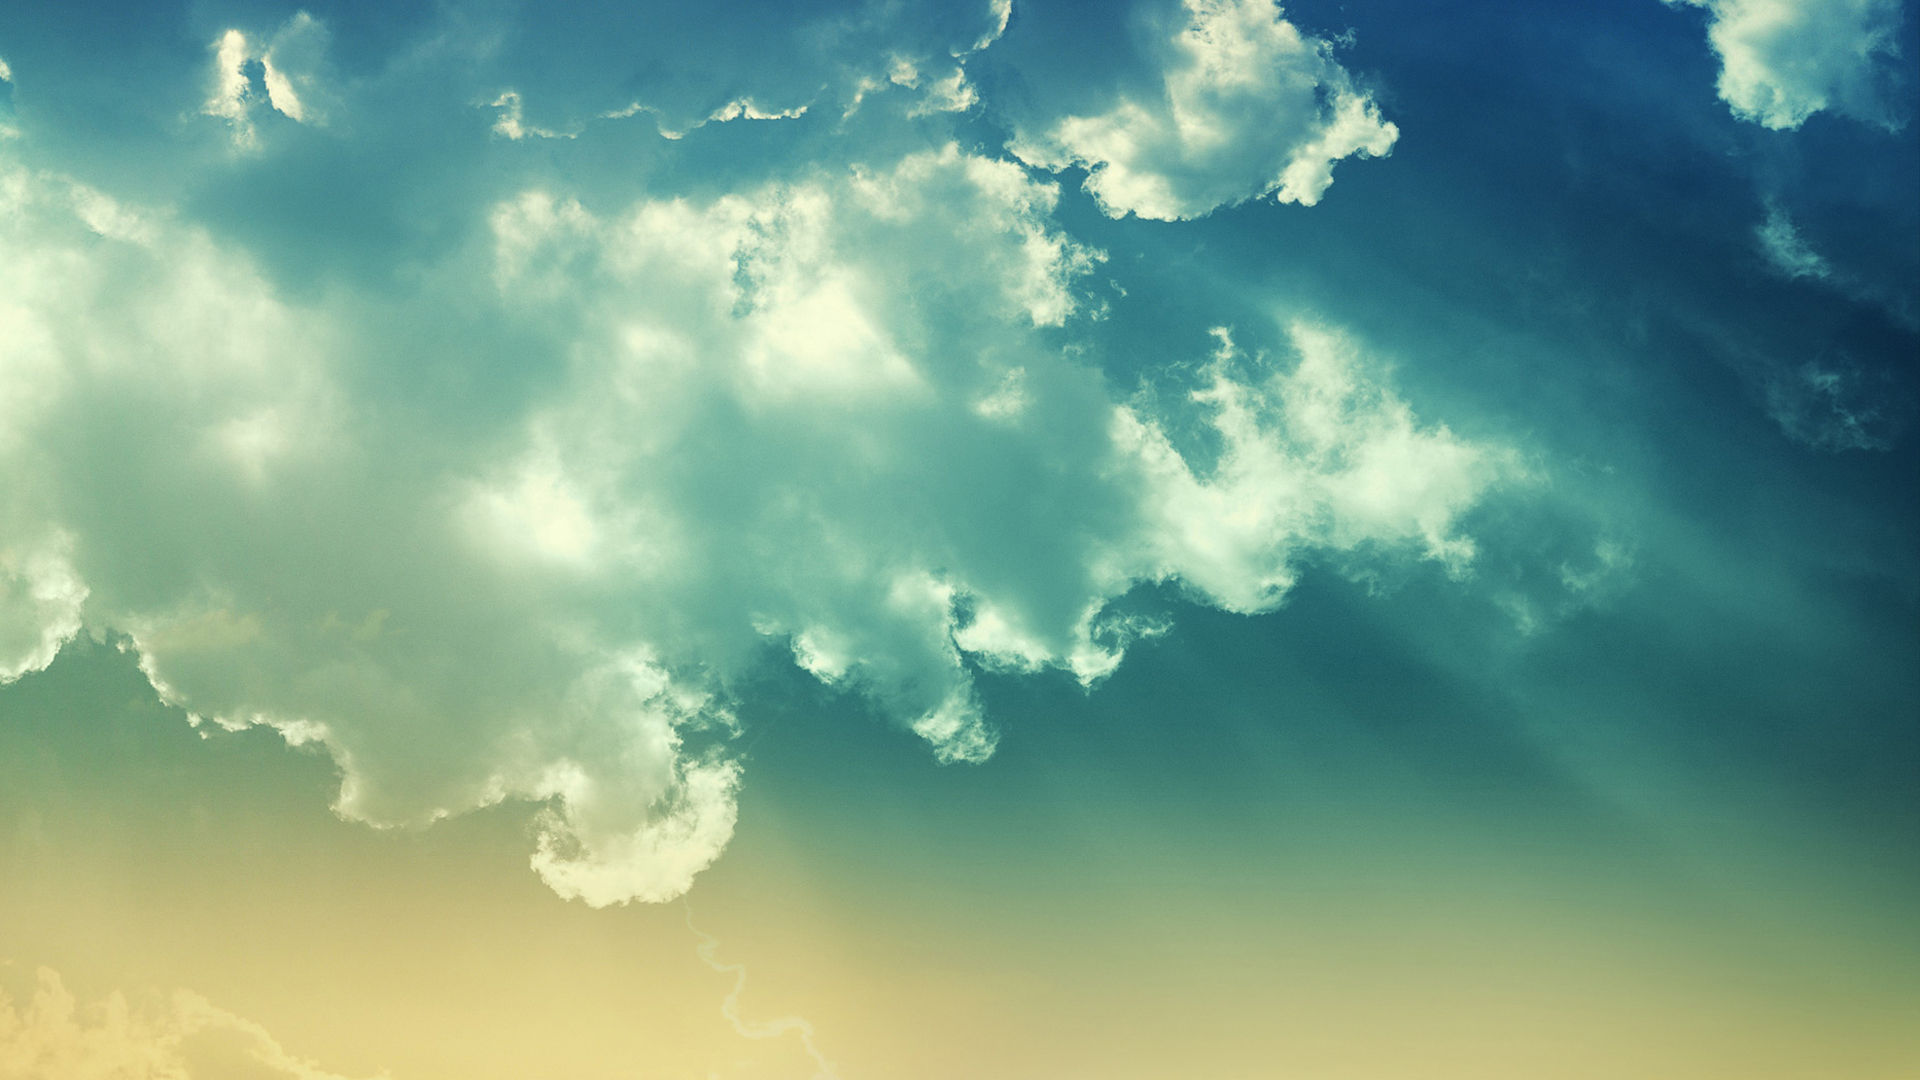 Wallpapers: Nubes[HD][recomendados] - Taringa!